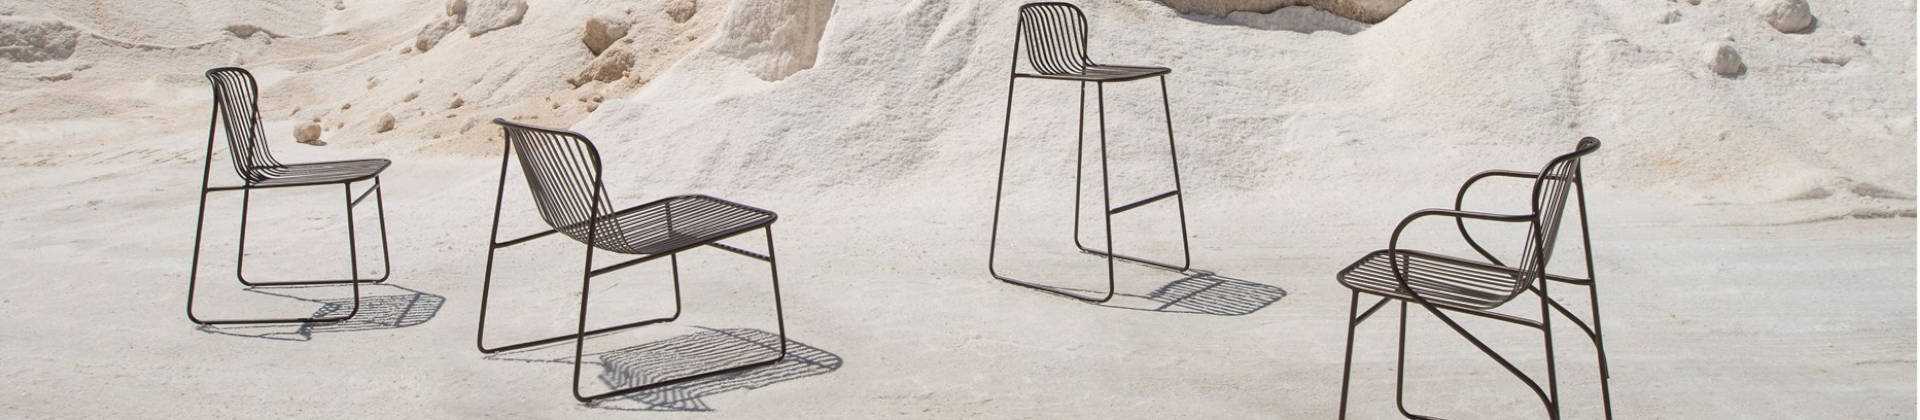 Emu I Arredamento Outdoor I Mondini Design Shop